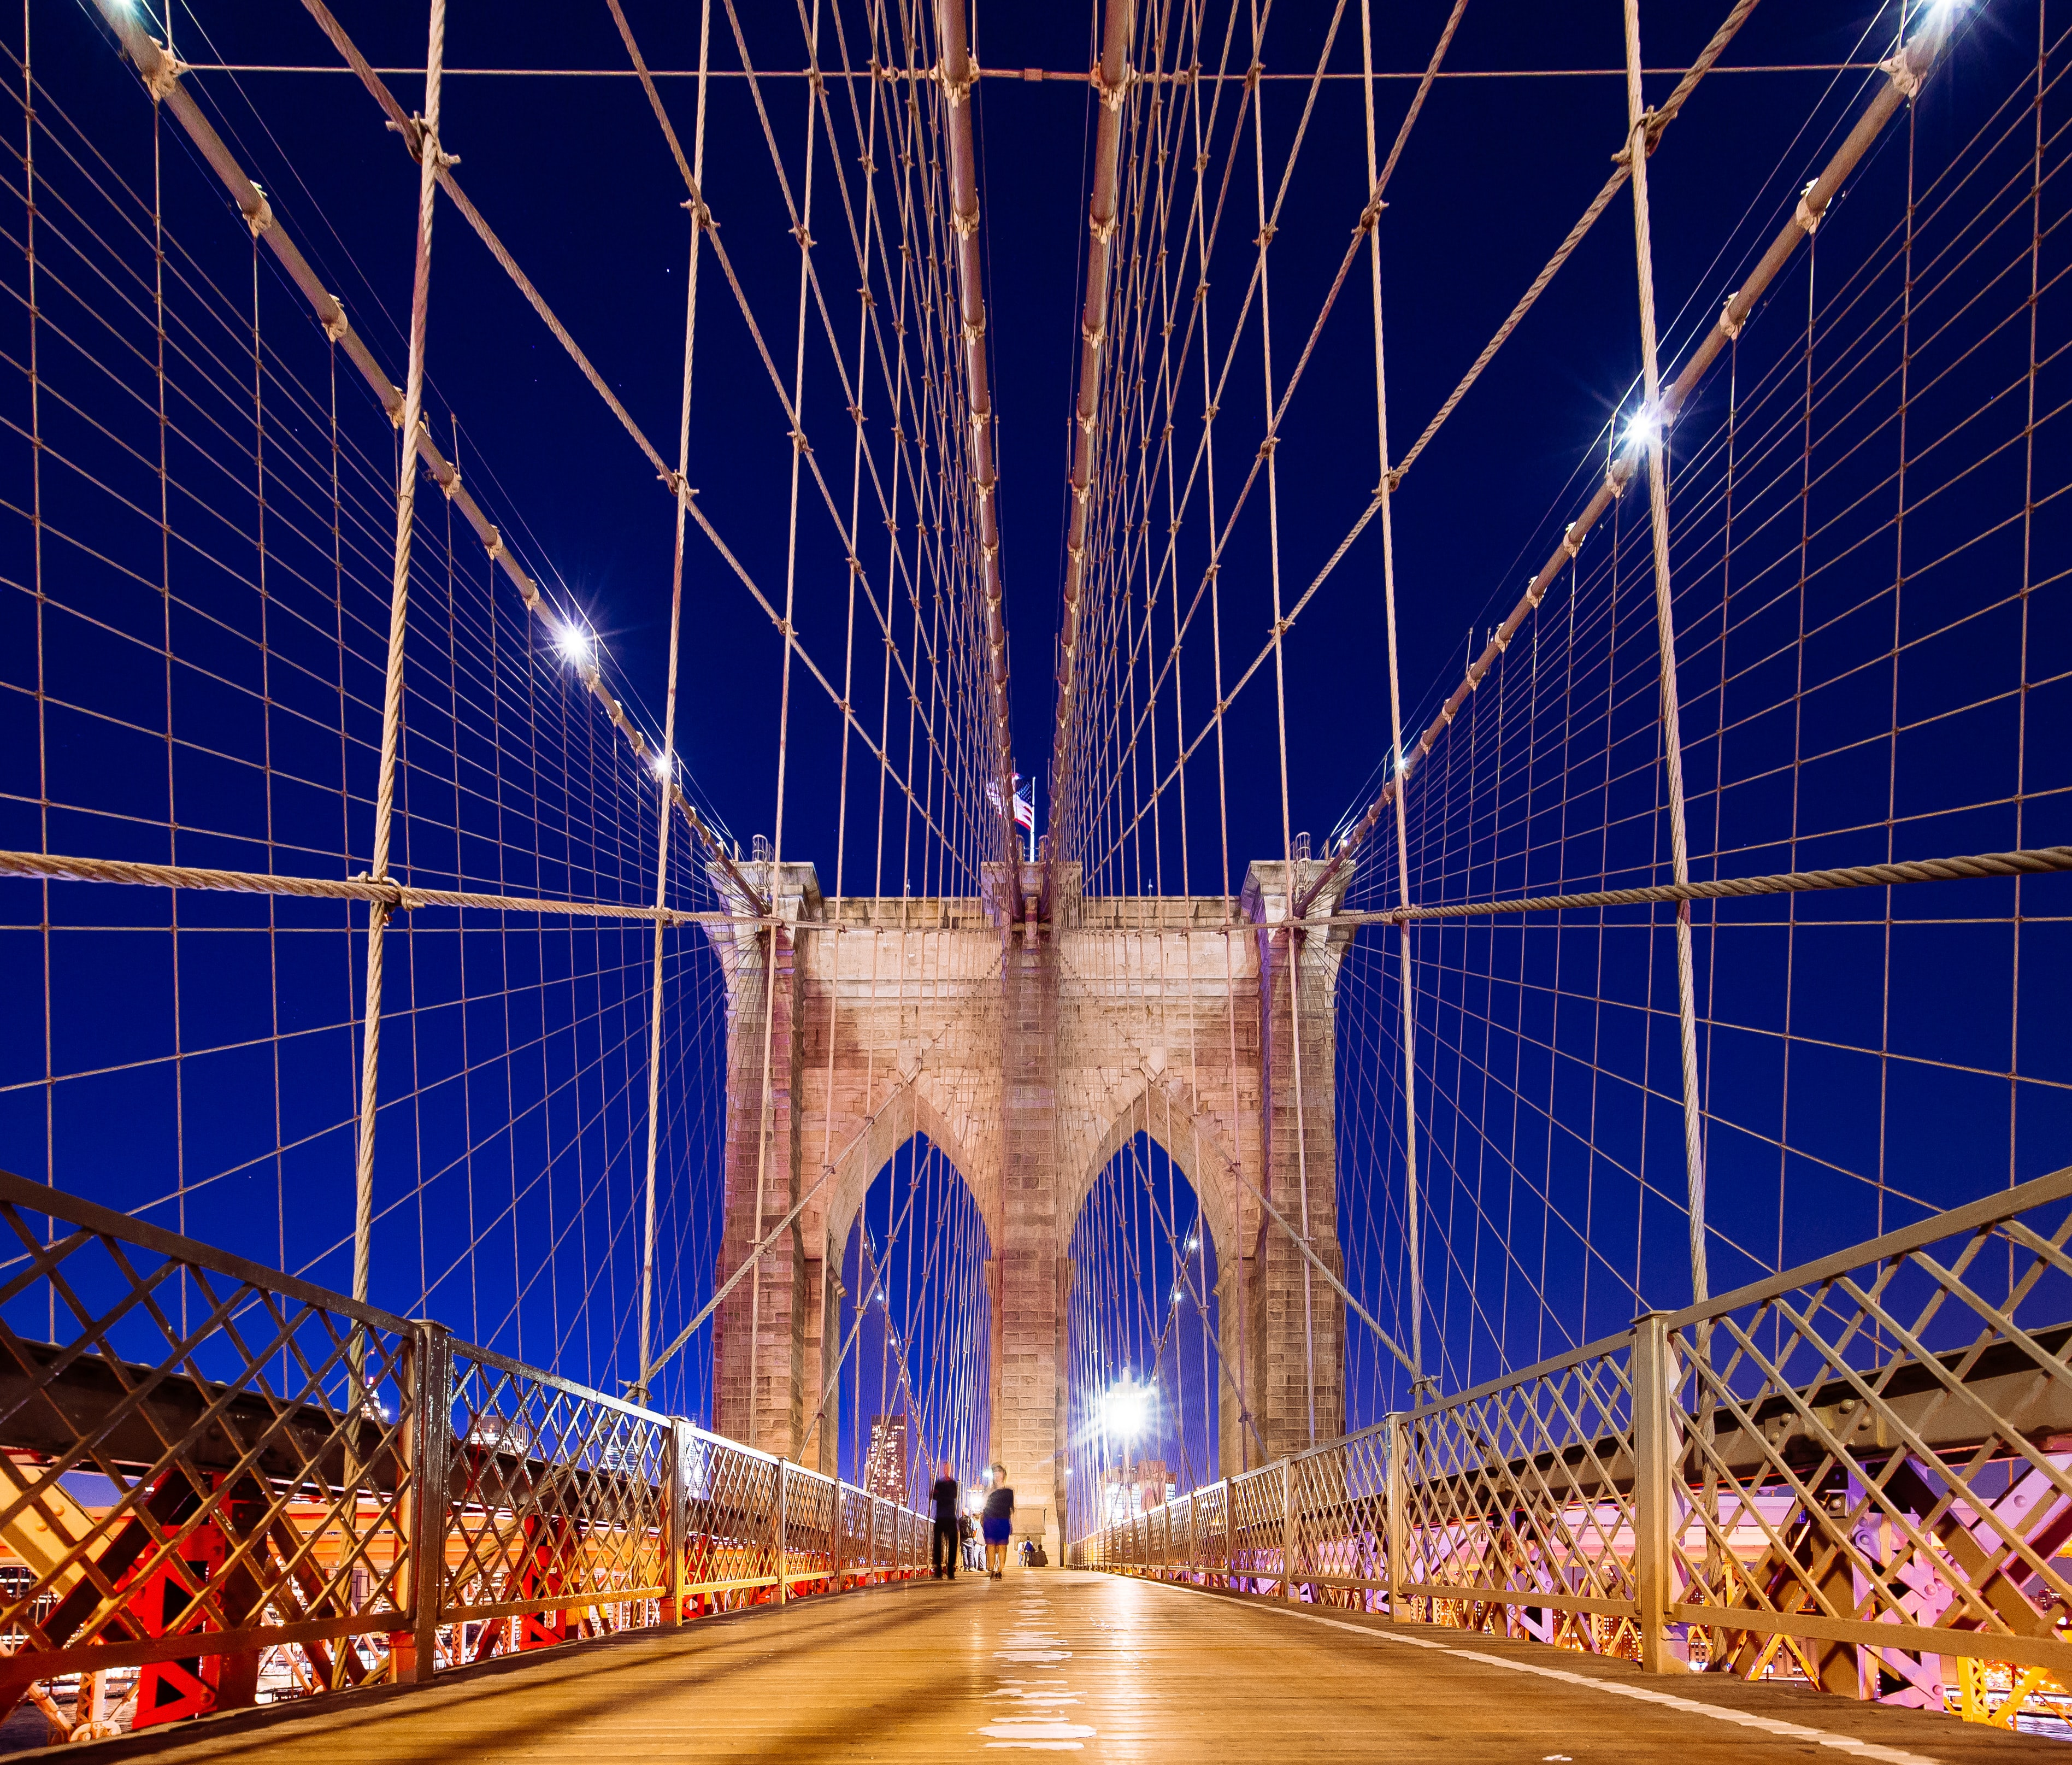 Brooklyn Bridge under blue sky